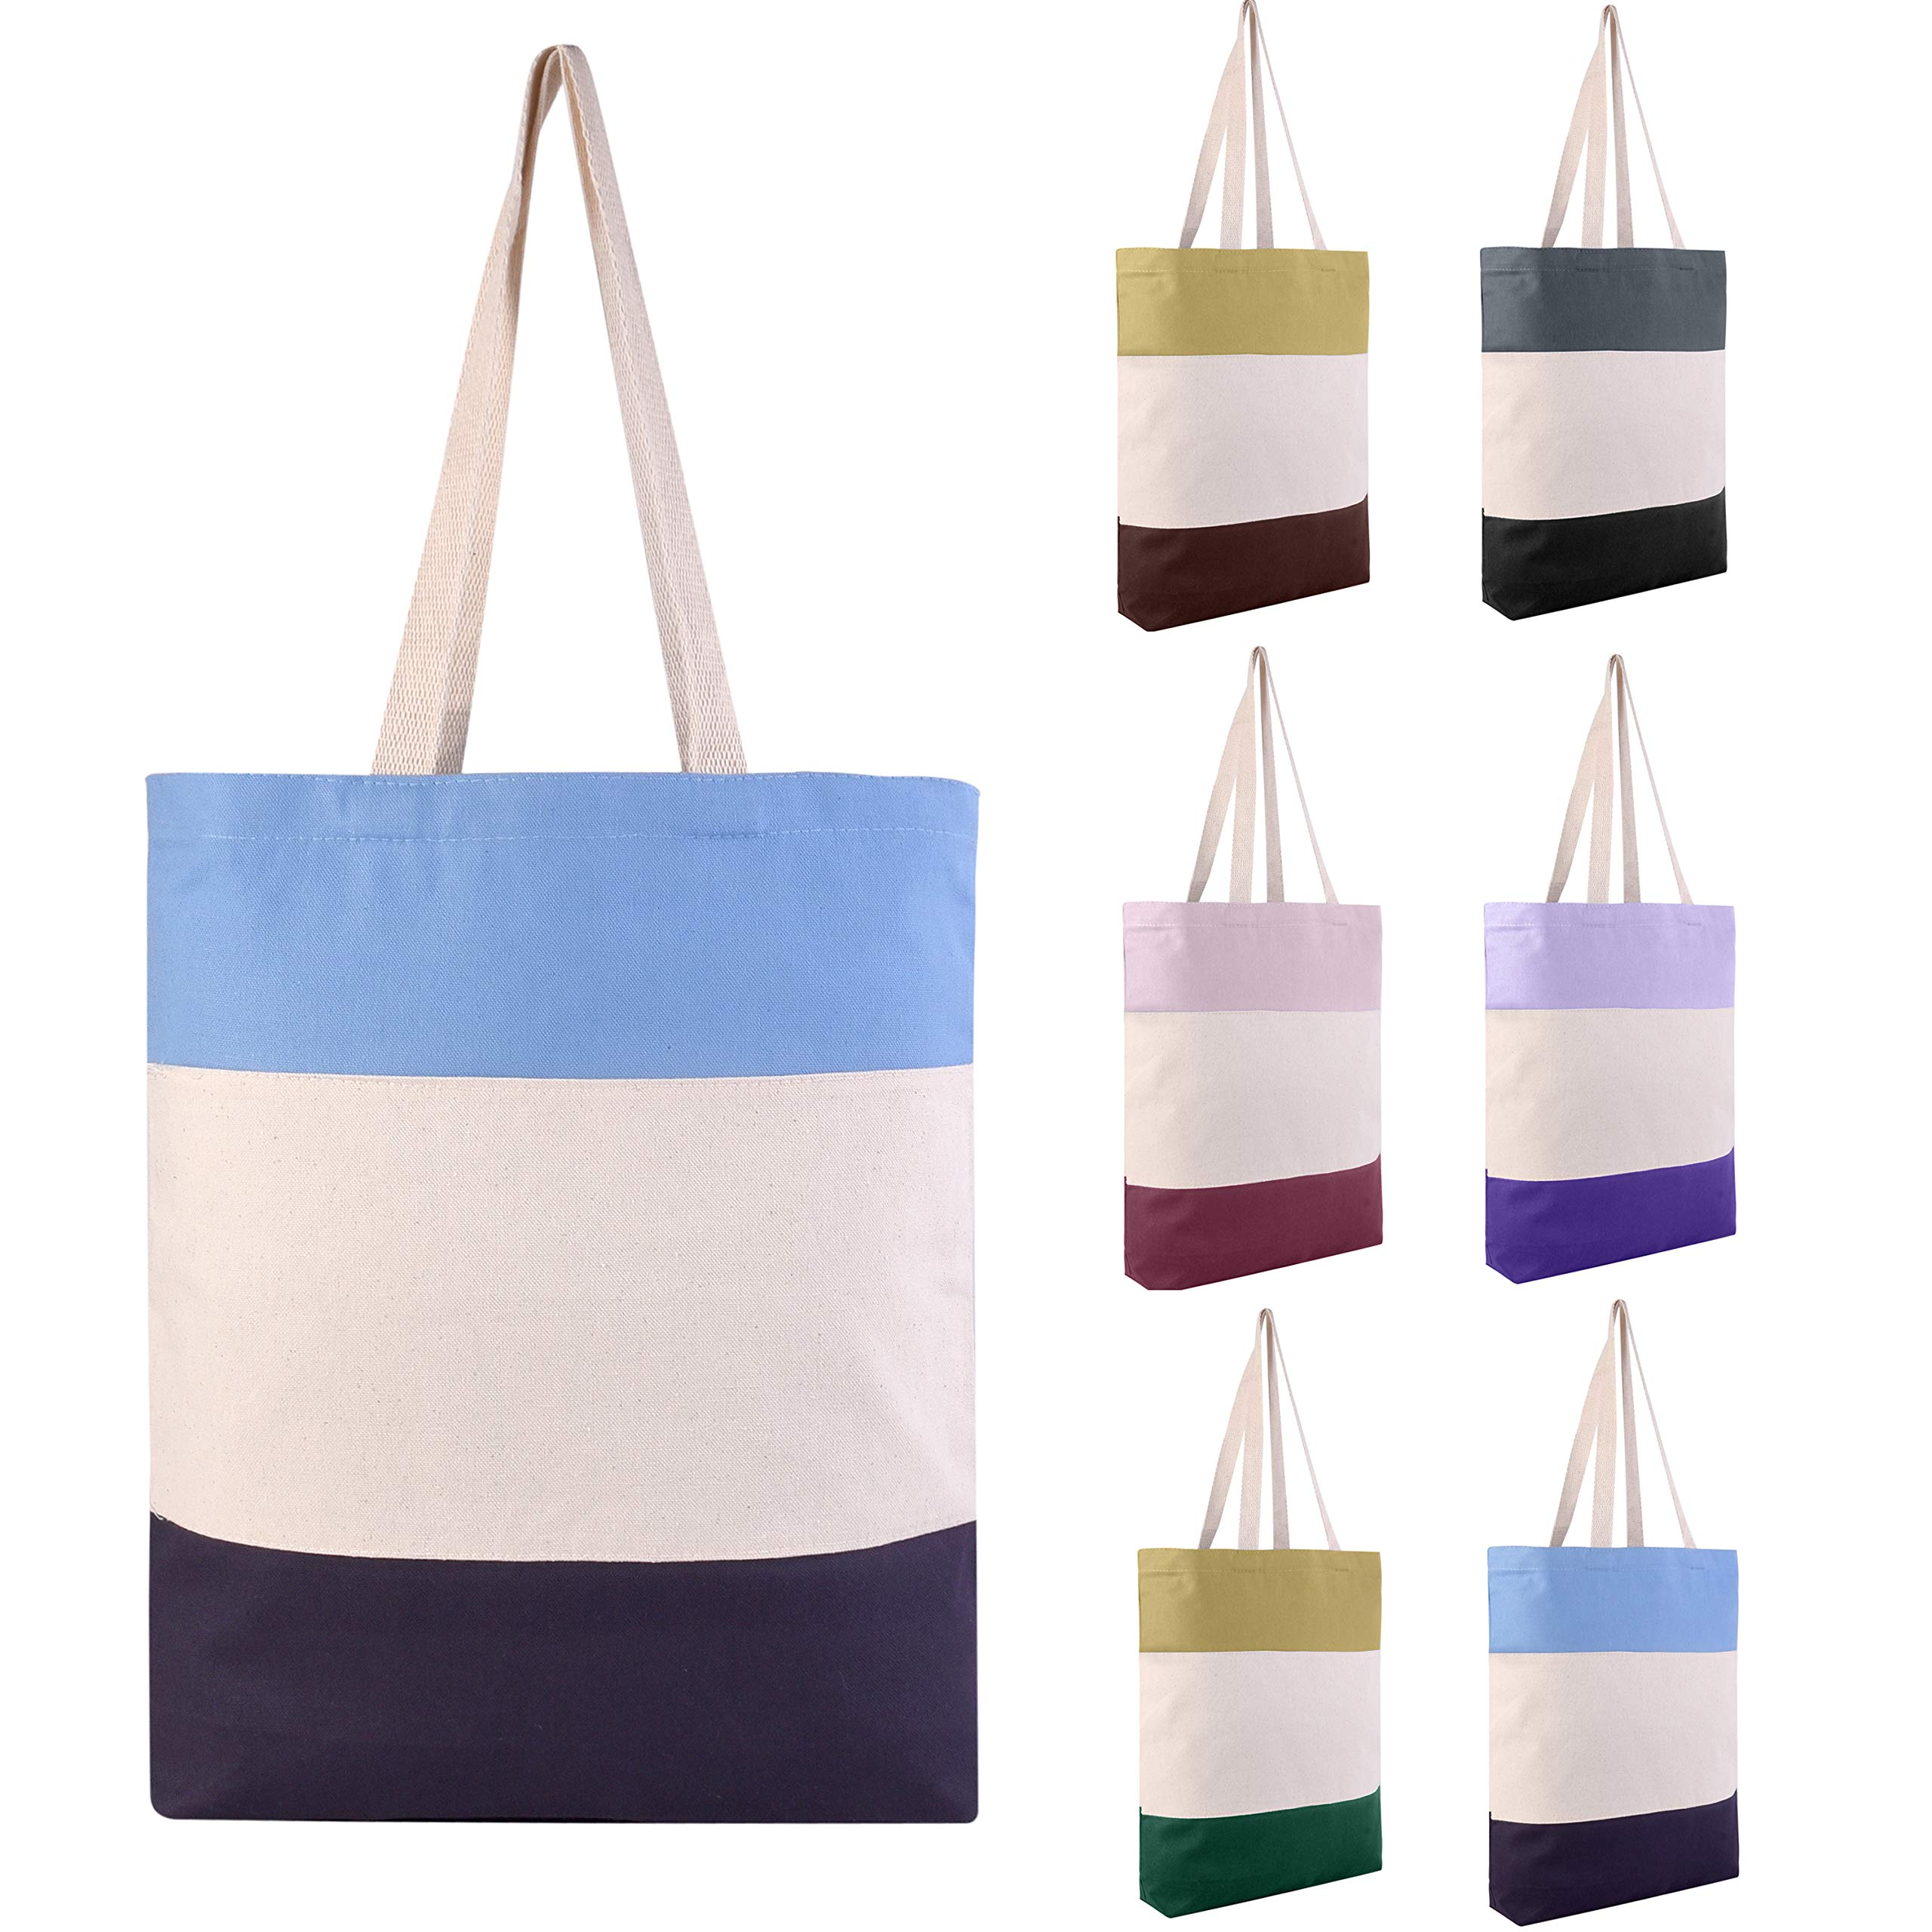 Pack of 6 - Reusable Fancy Durable Tri-Color Canvas Blank Shopping Tote Bags - 12oz. Fabric Sturdy Canvas Plain Tote Bags in Bulk - 15''W x 15''H x 3''D Bottom Gusset (Mix-Assorted) by BagzDepot